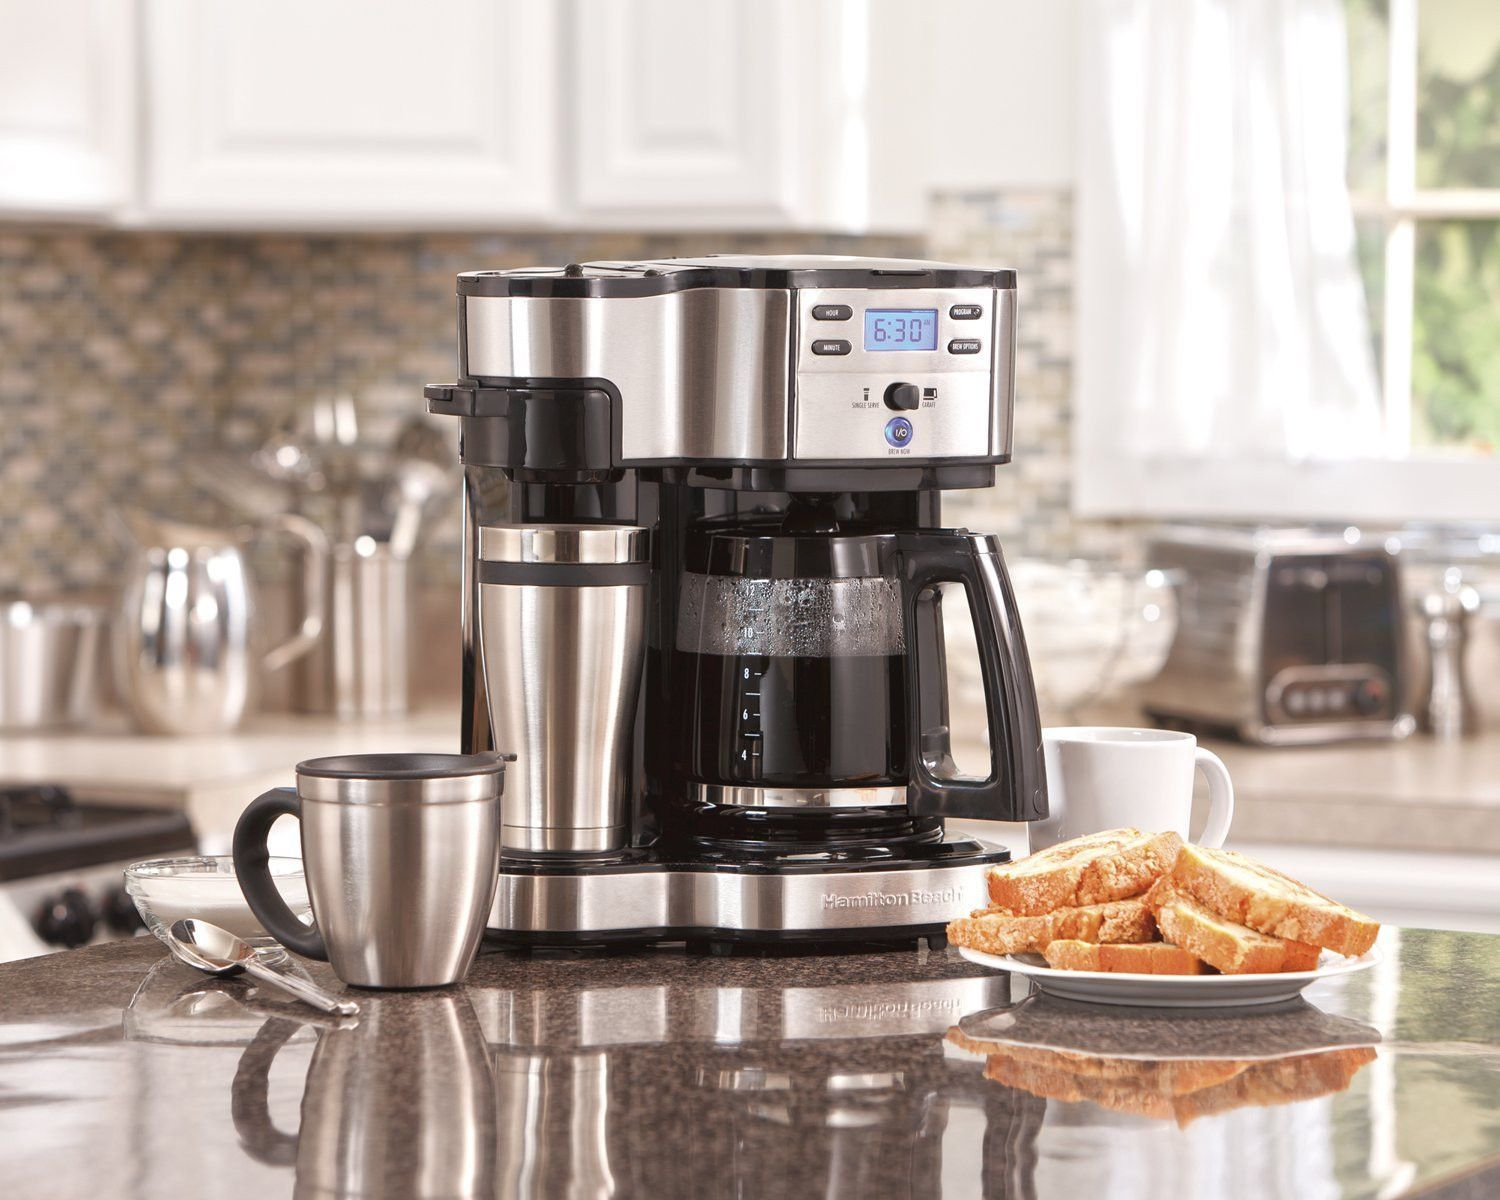 Krups xp1500 Coffee Maker and Espresso Machine Review